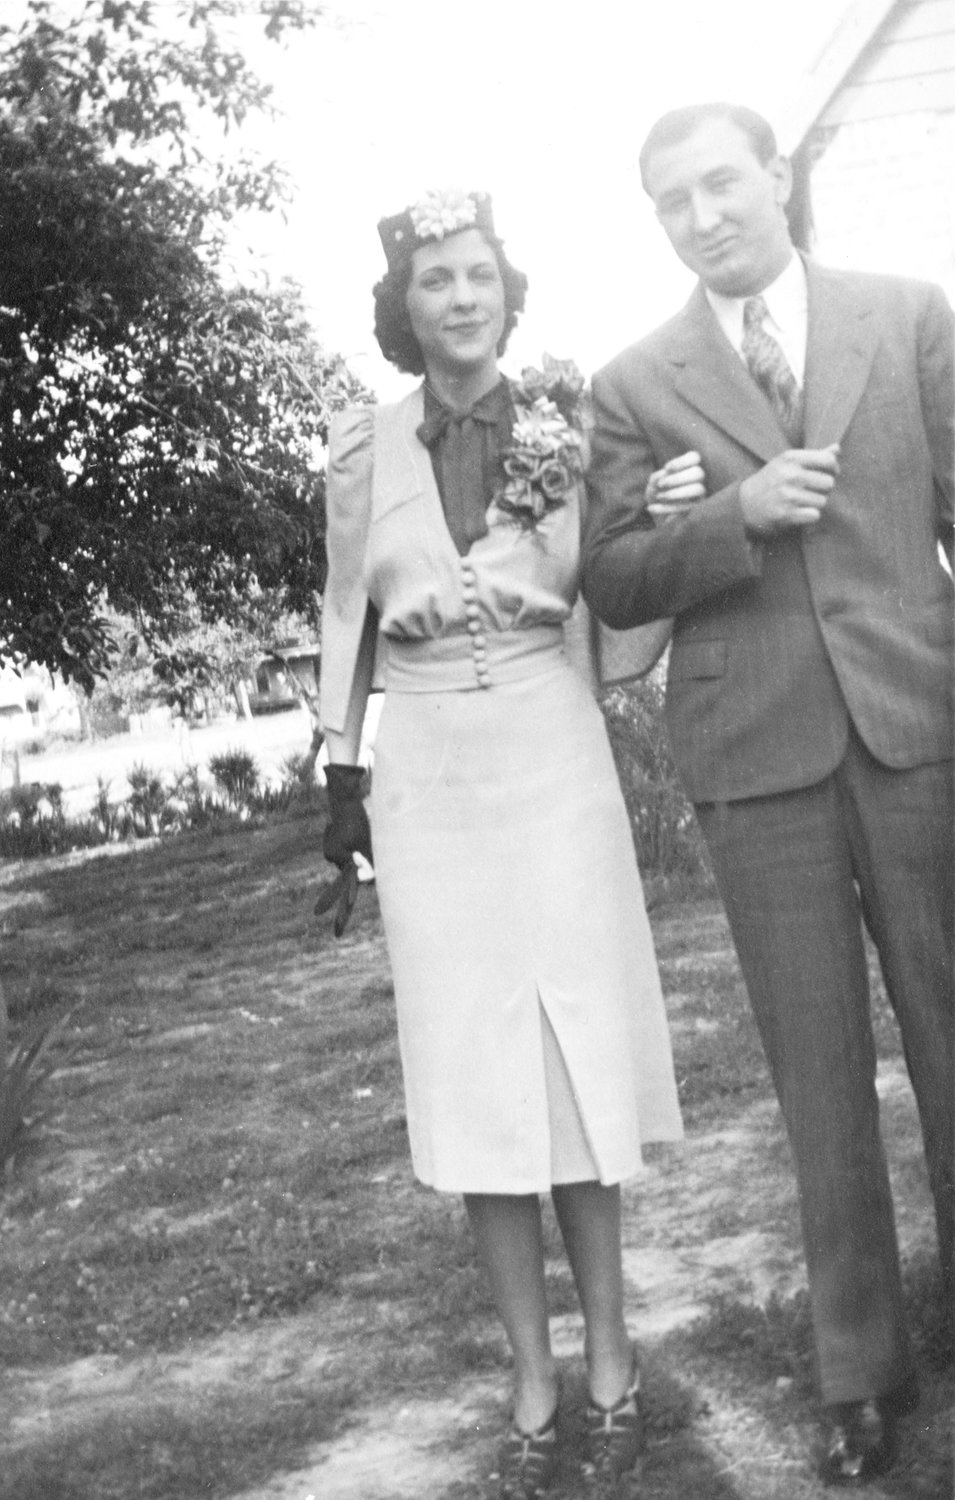 On May 1, 1938, Swat Scarbrough and Margaret Carter were married.